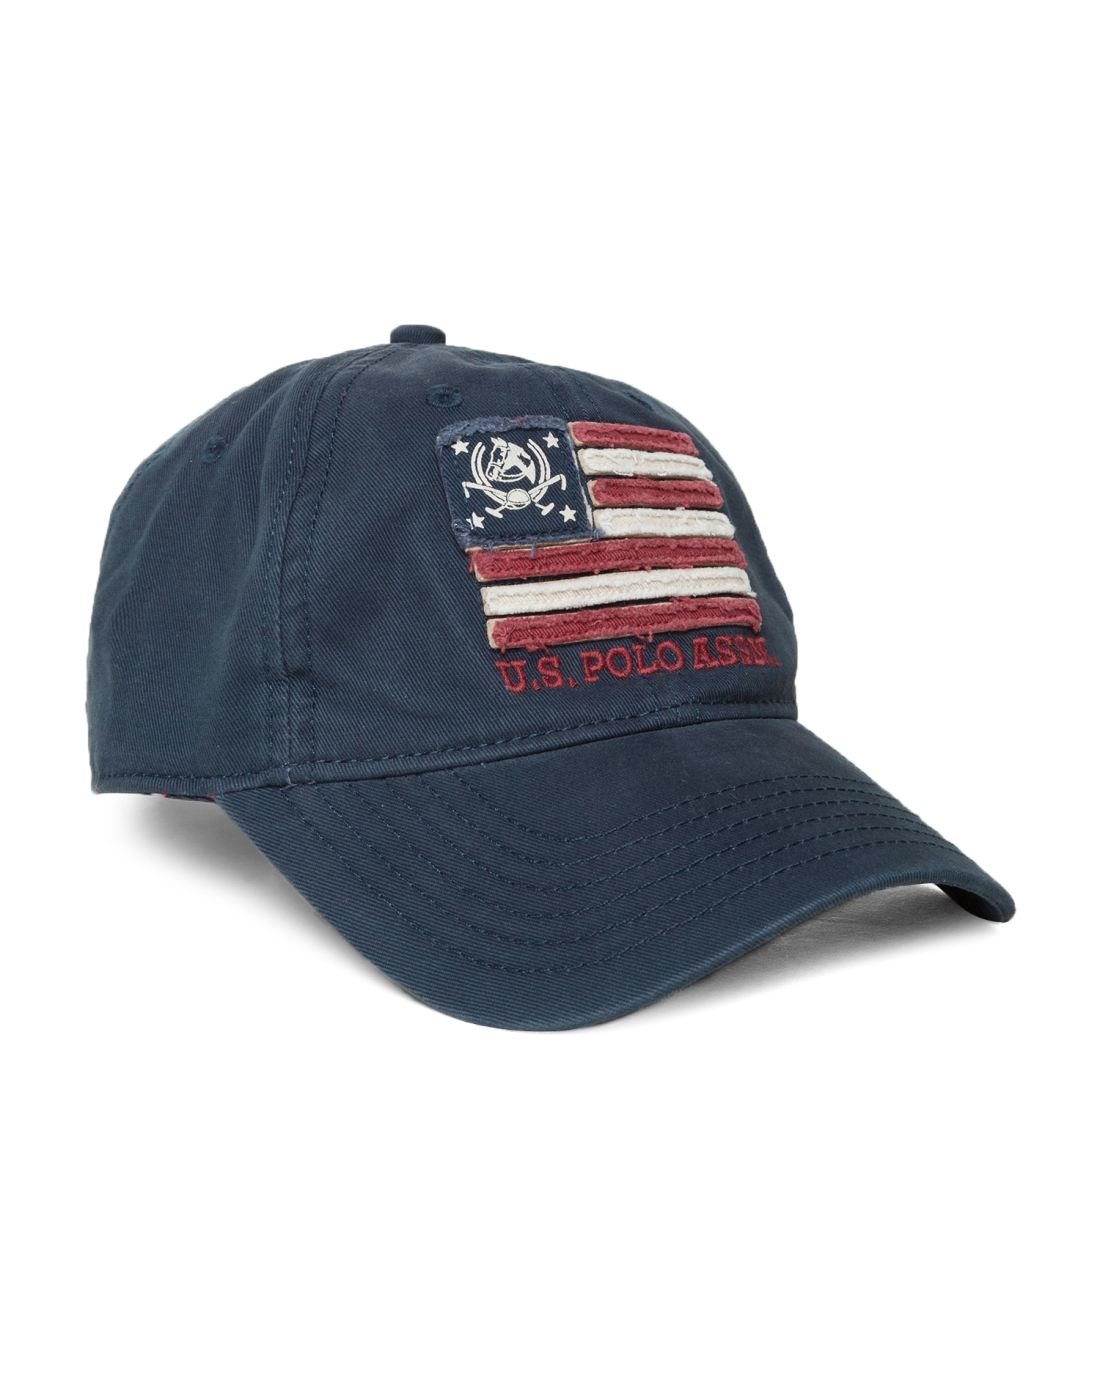 U.S. Polo Assn. Men Casual Wear Solid Cap